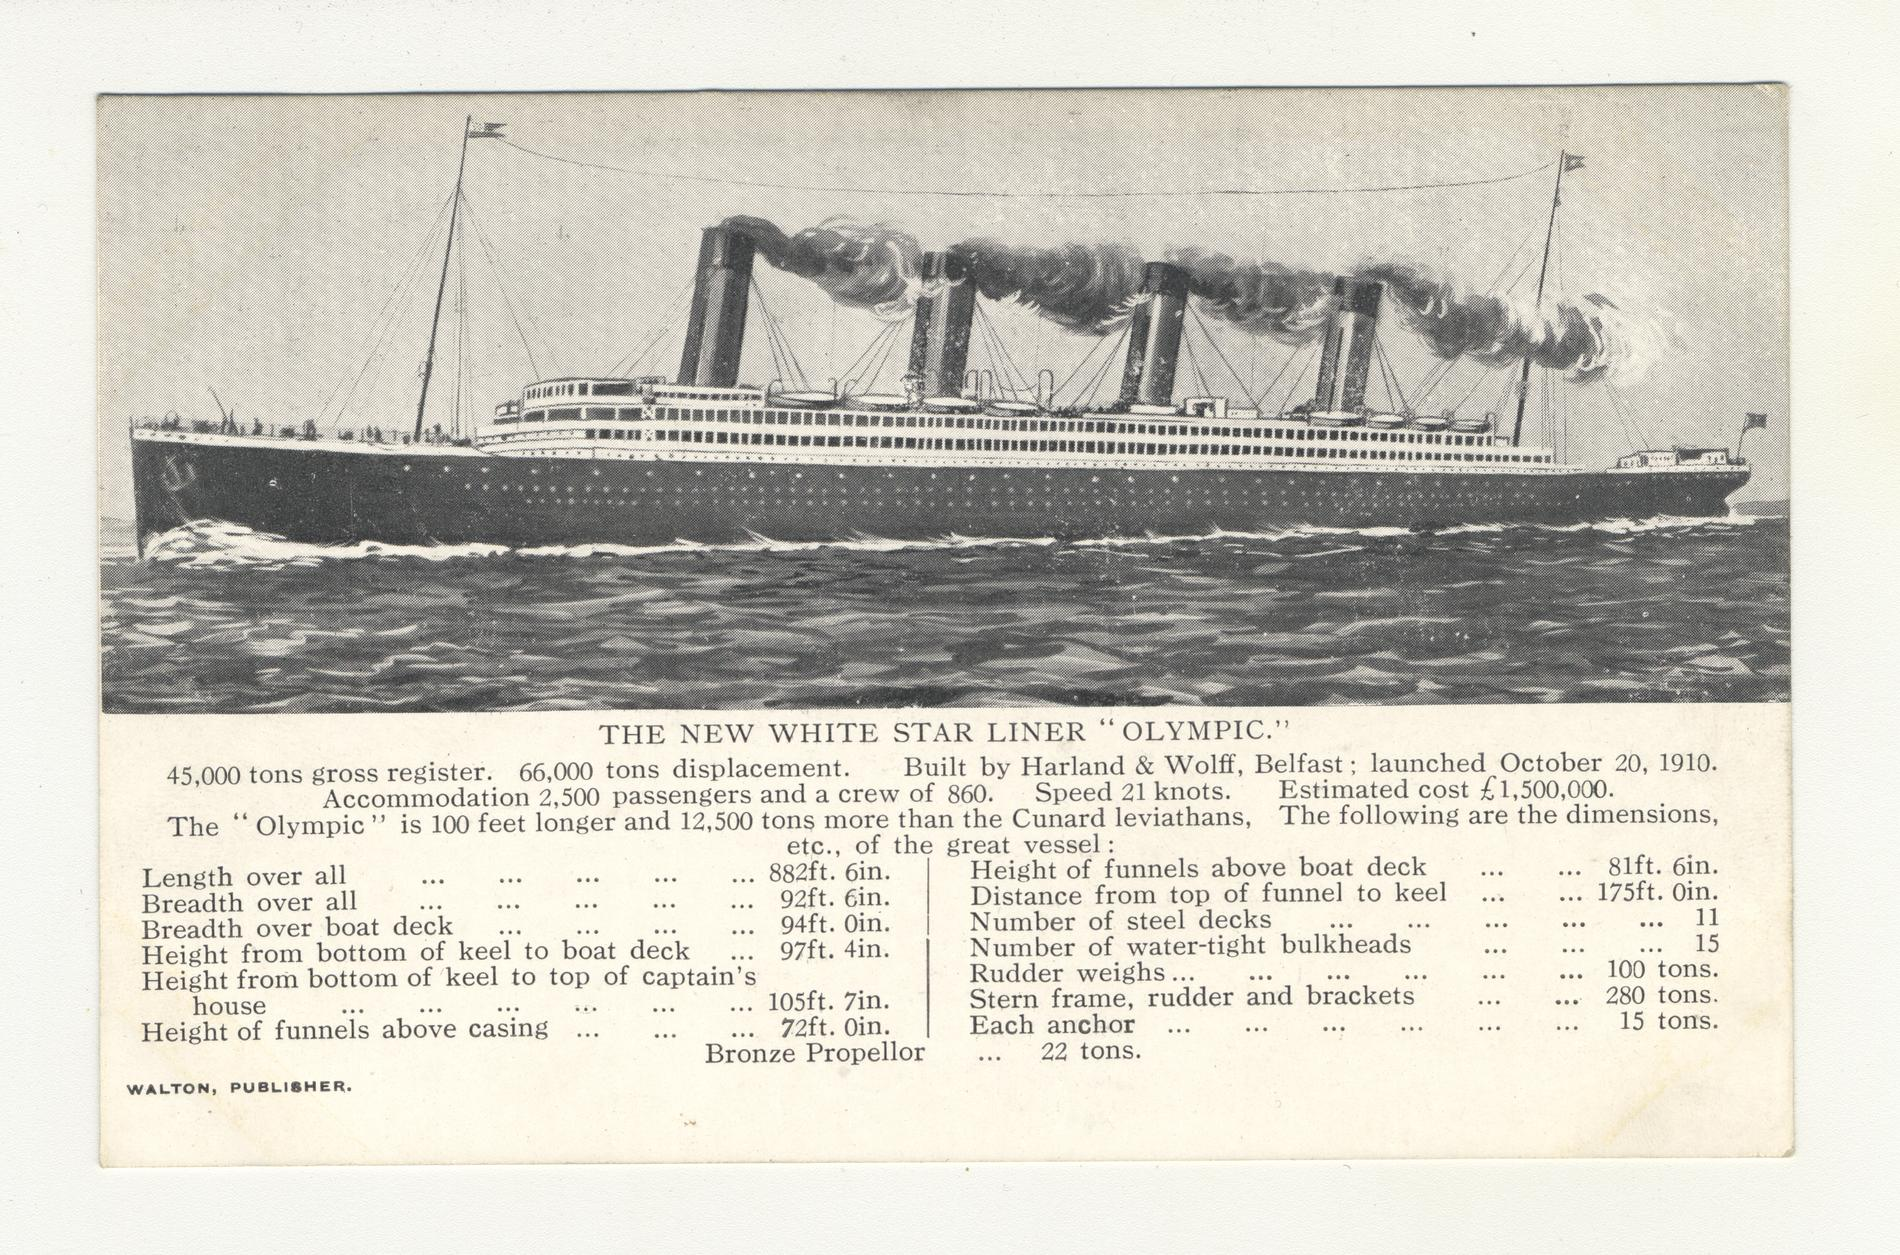 """The New White Star Liner """"Olympic"""" (Postcard)"""